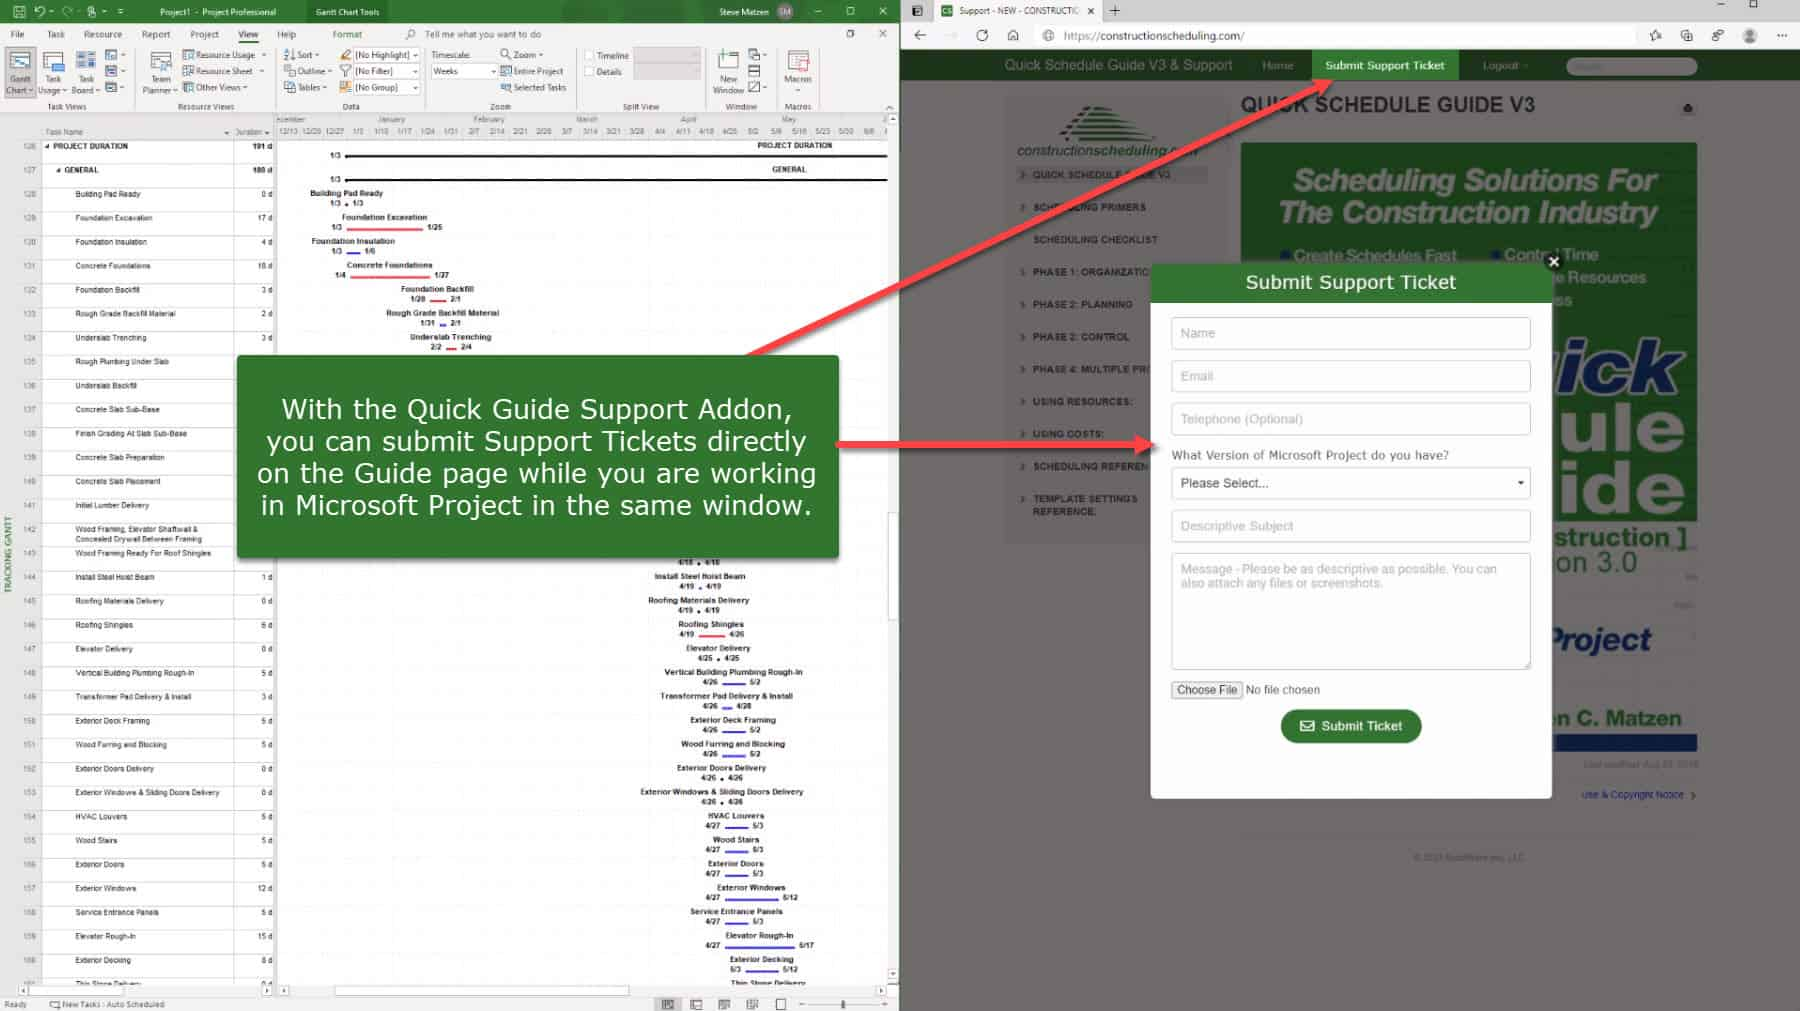 Construction Scheduling Submit Support Ticket